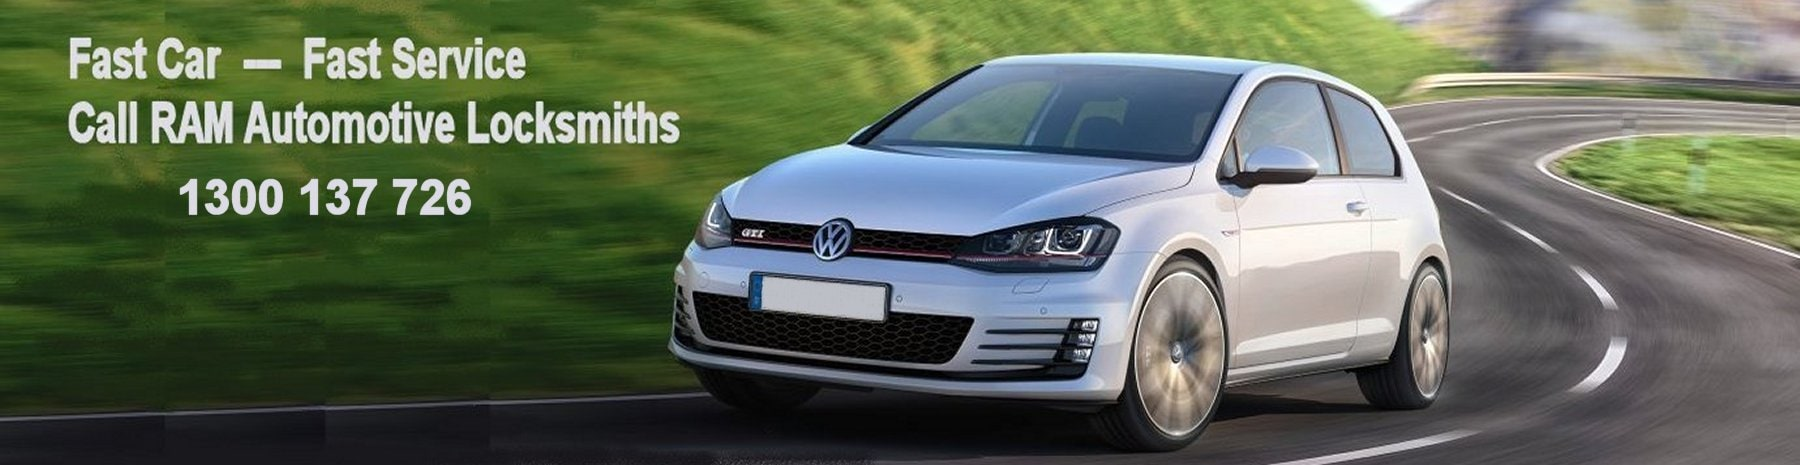 vw-with-text-1800x465-new